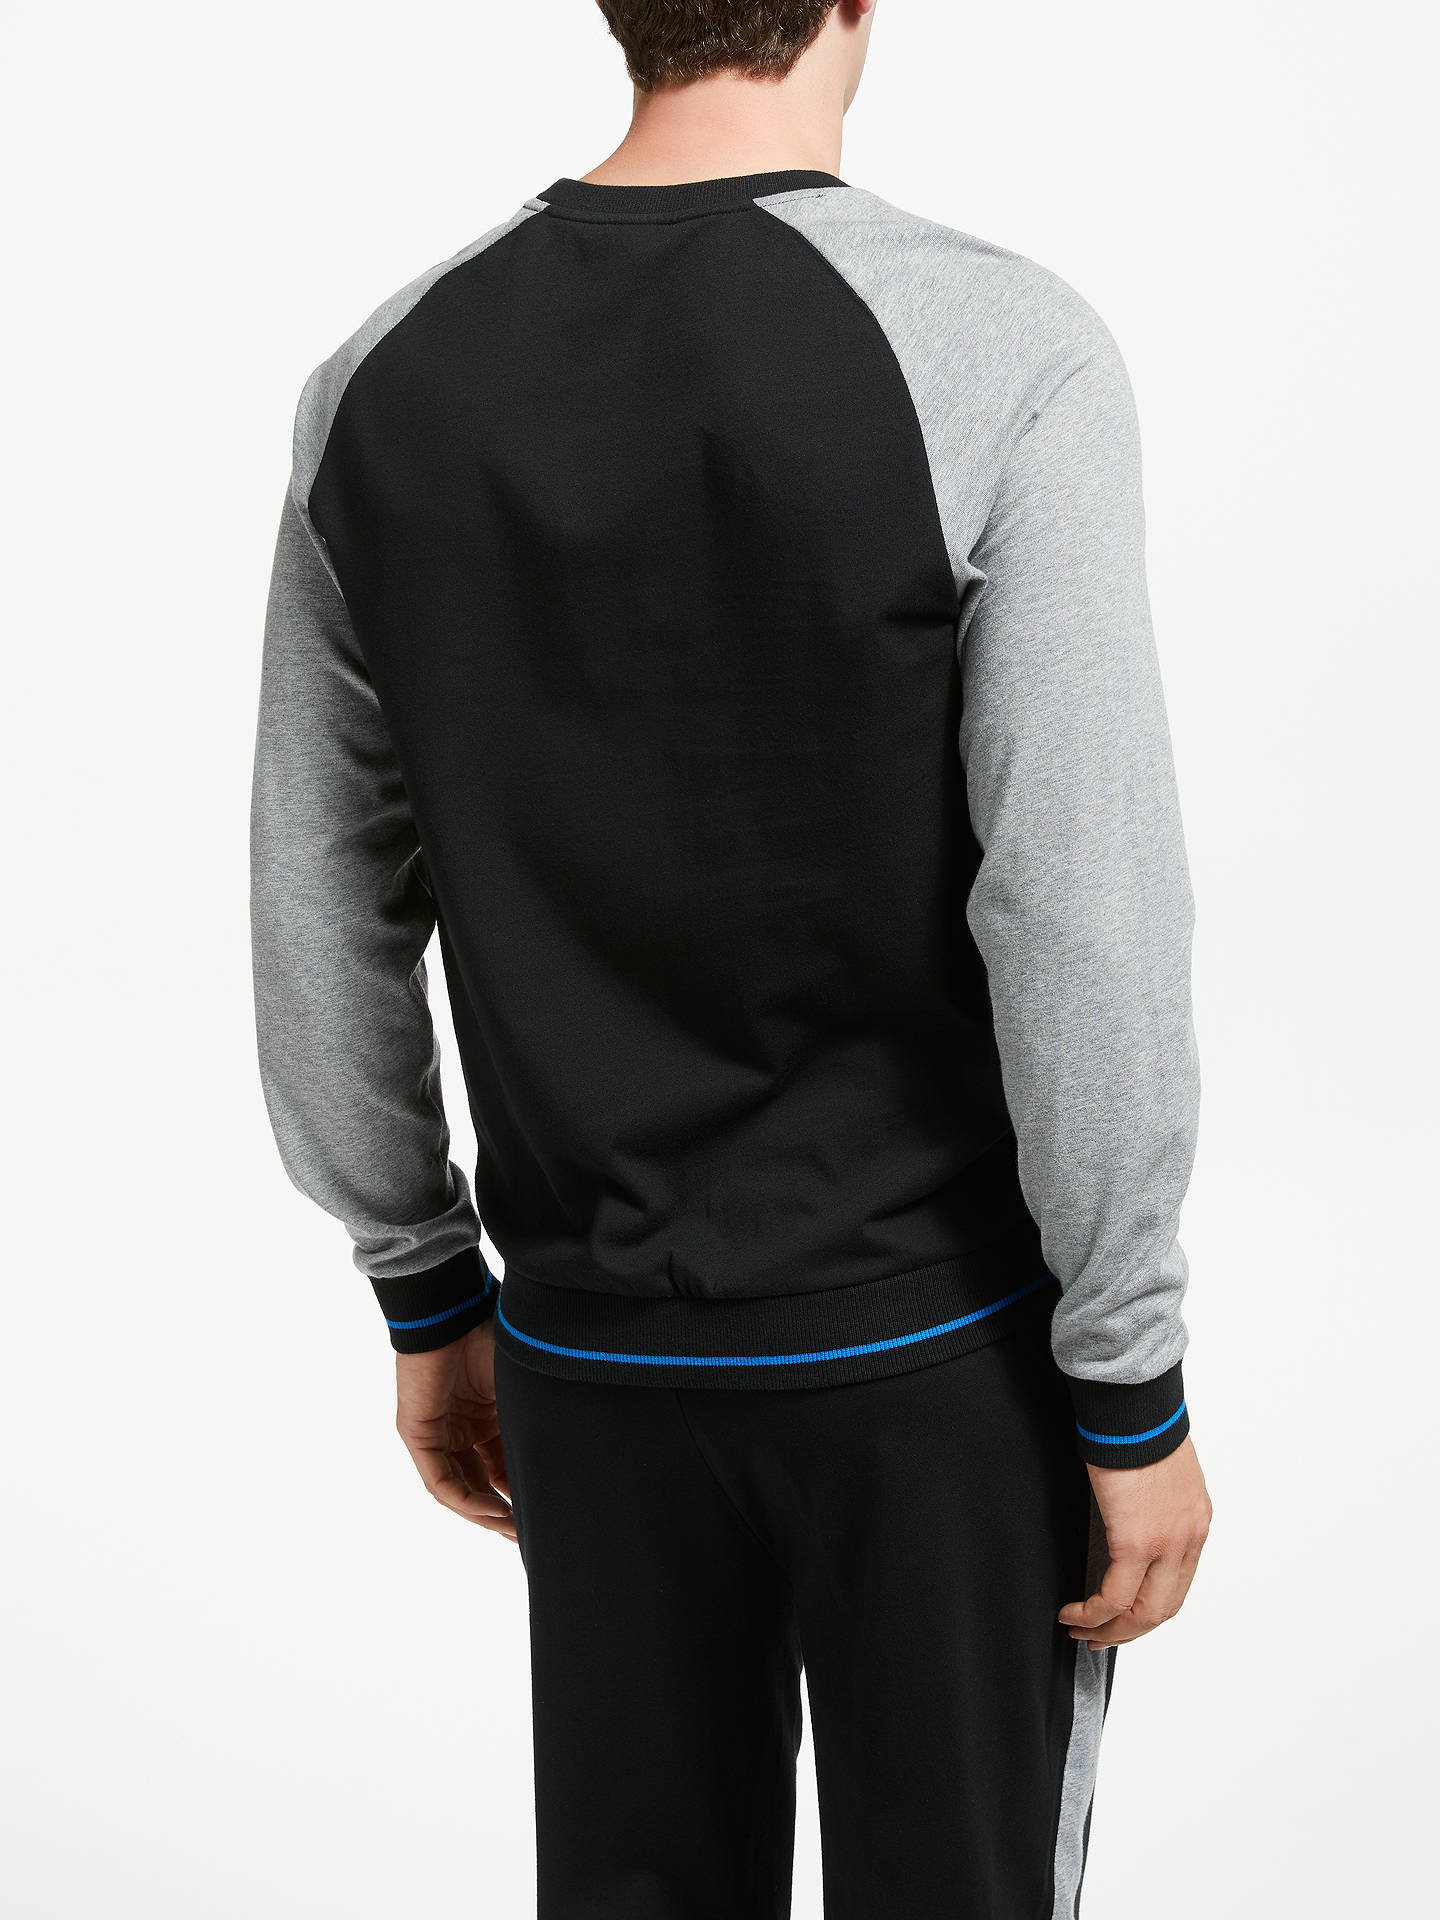 BuyBOSS Authentic Lounge Sweatshirt, Black, XL Online at johnlewis.com